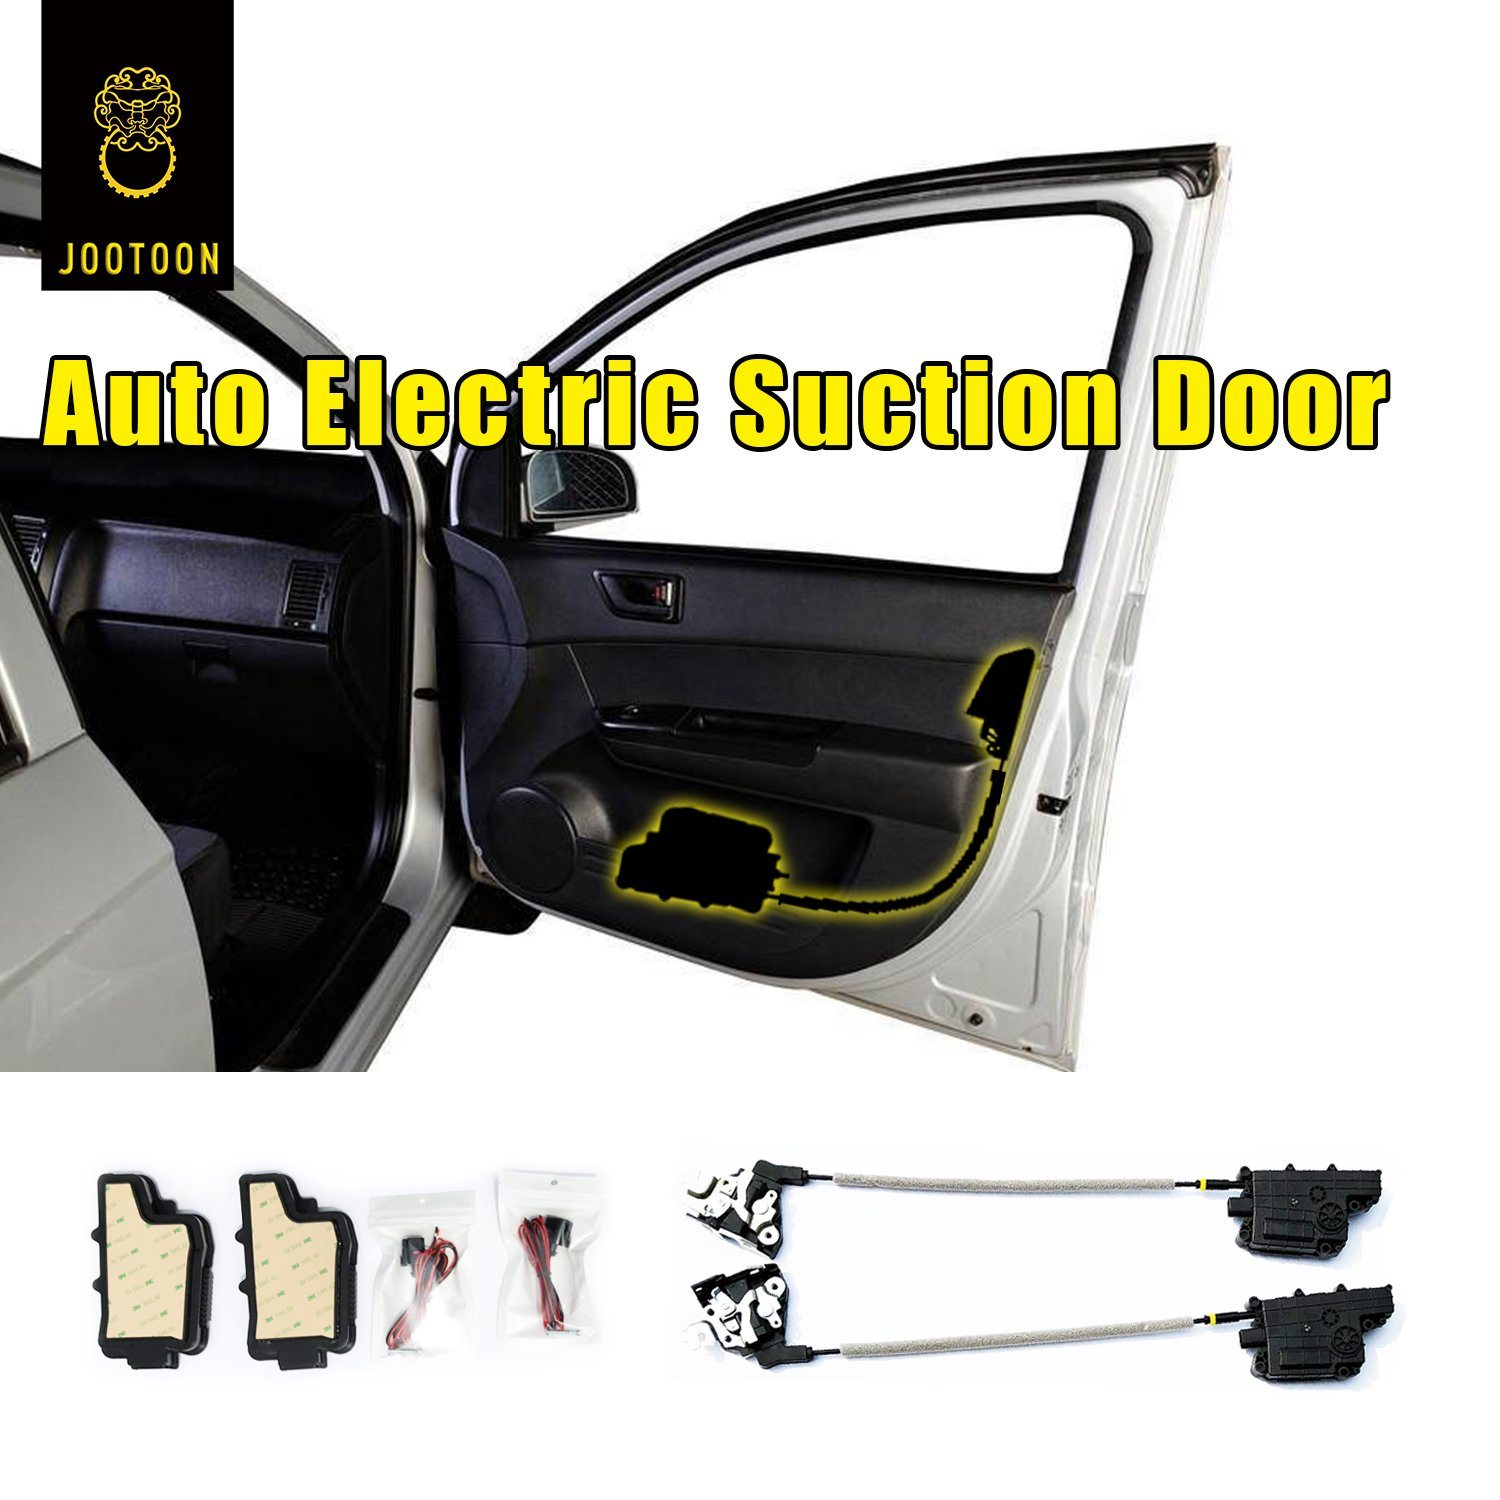 [Hot Item] for Lexus for Lexus Lx450/ Lx470/ Lx570 2007 2008 2009 2010 2011  2012 2013 2014 2015 Auto Smart Car Electric Suction Door Lock